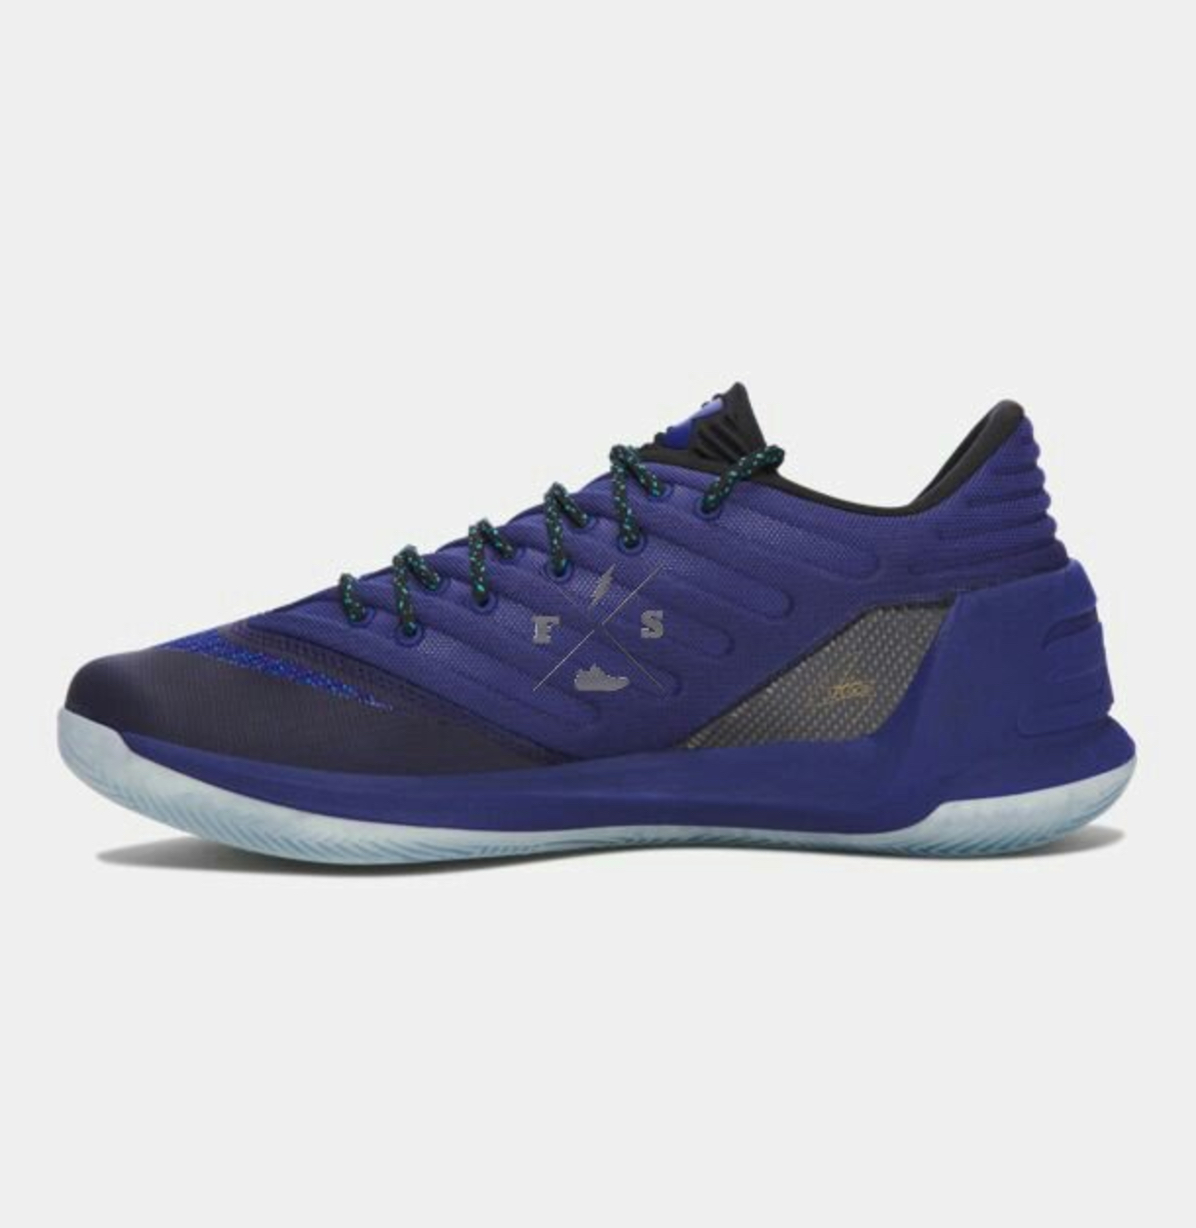 under armour curry 3 low dark horse 2